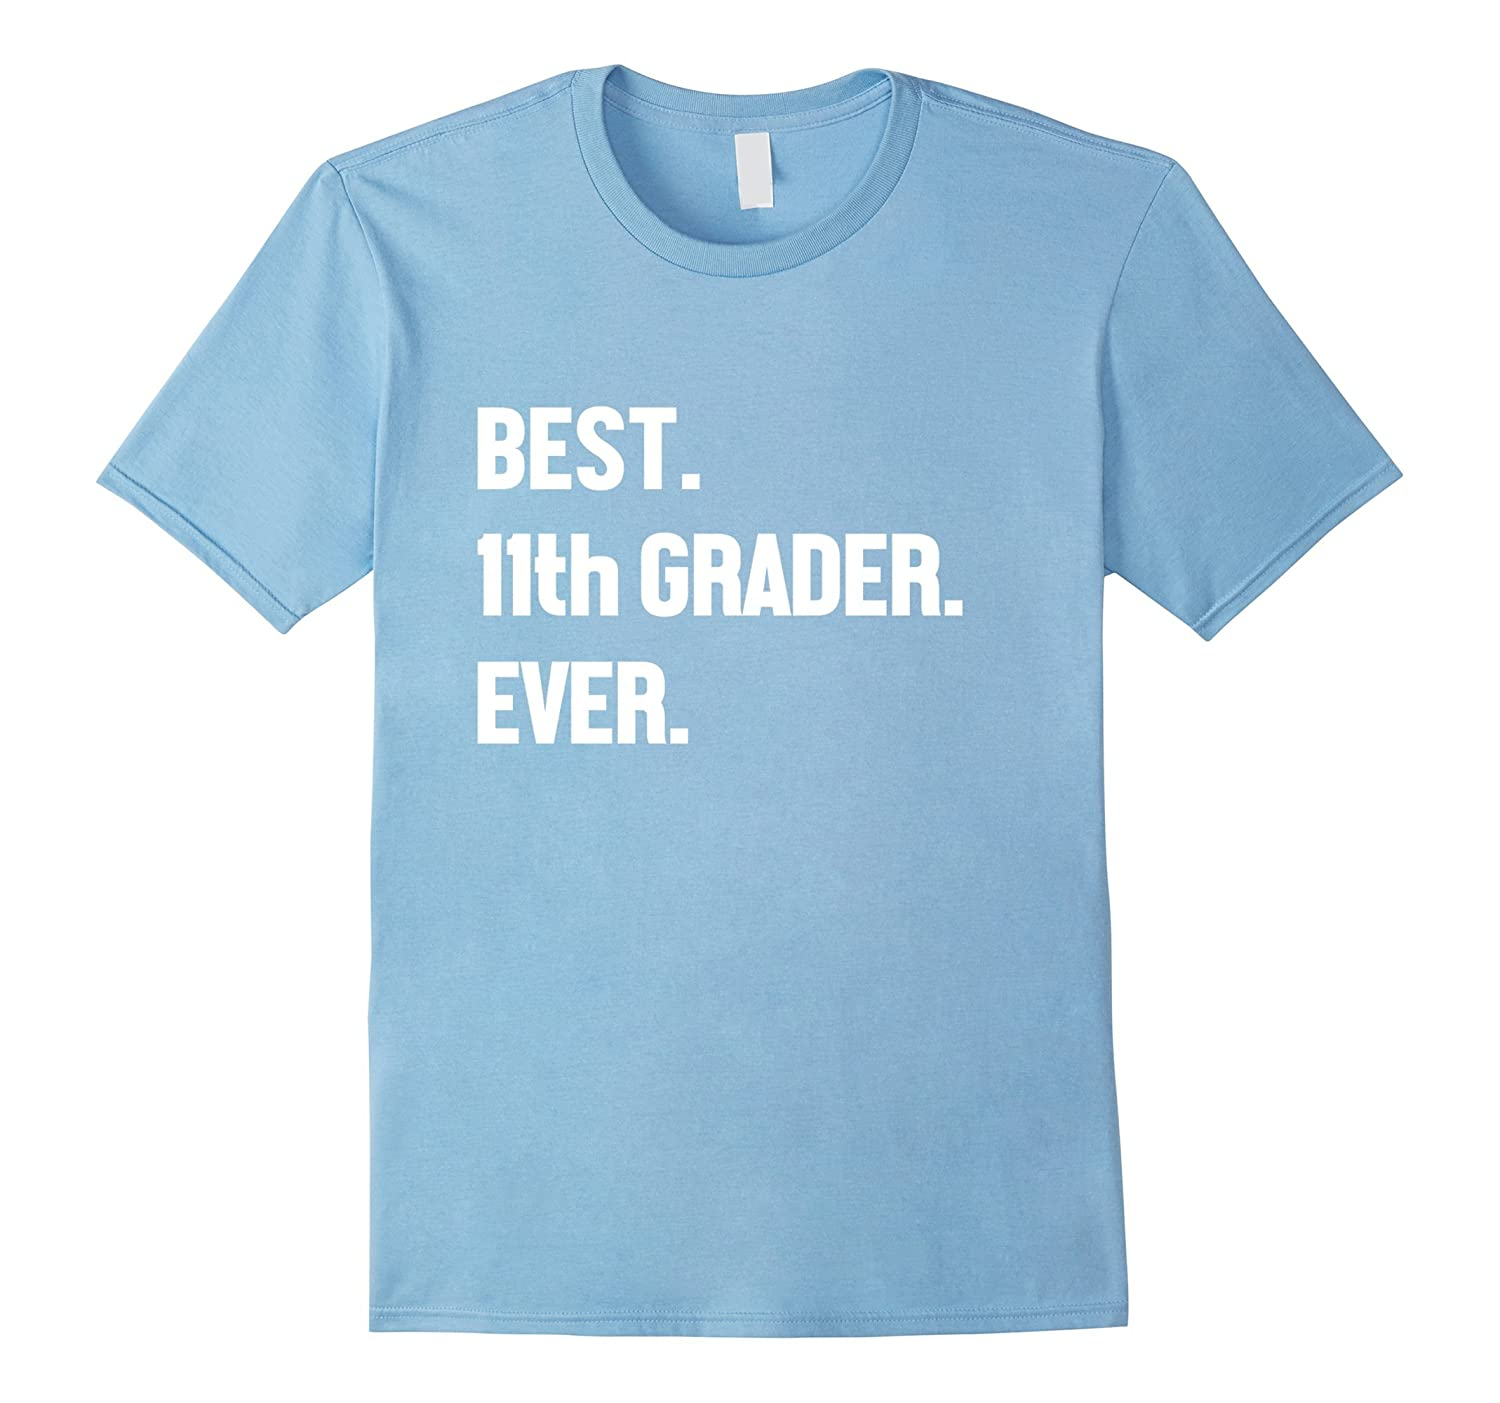 Best 11th Grader Ever T-Shirt for Boys and Girls-Art